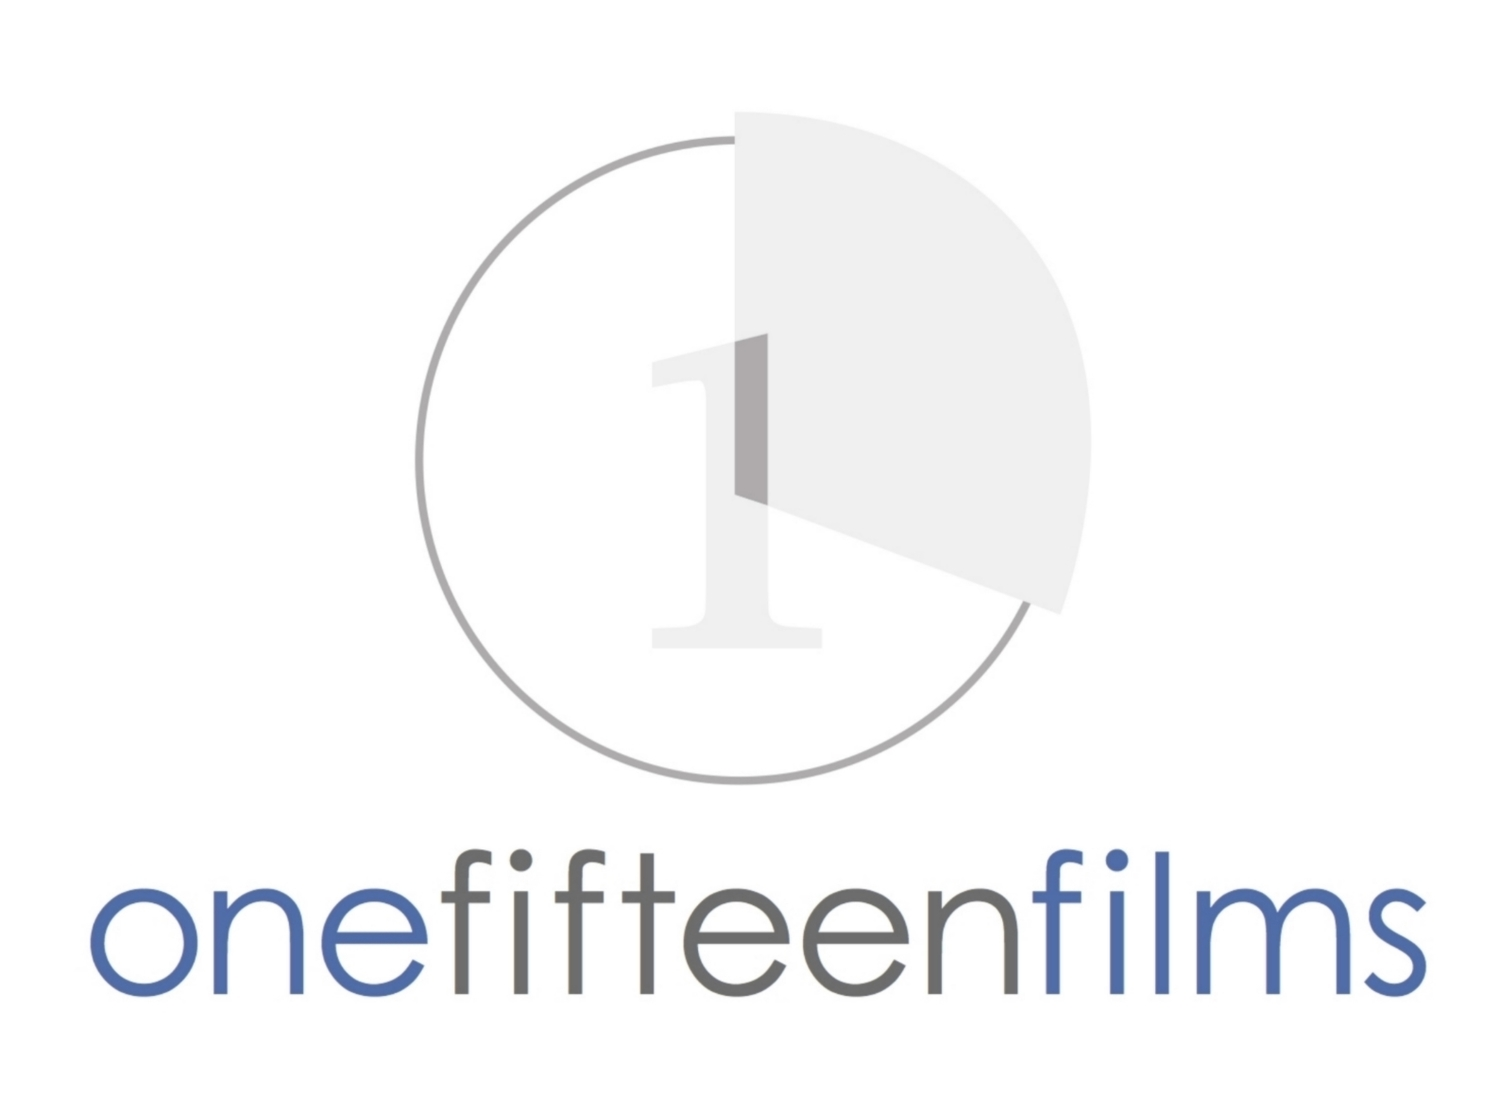 one fifteen films